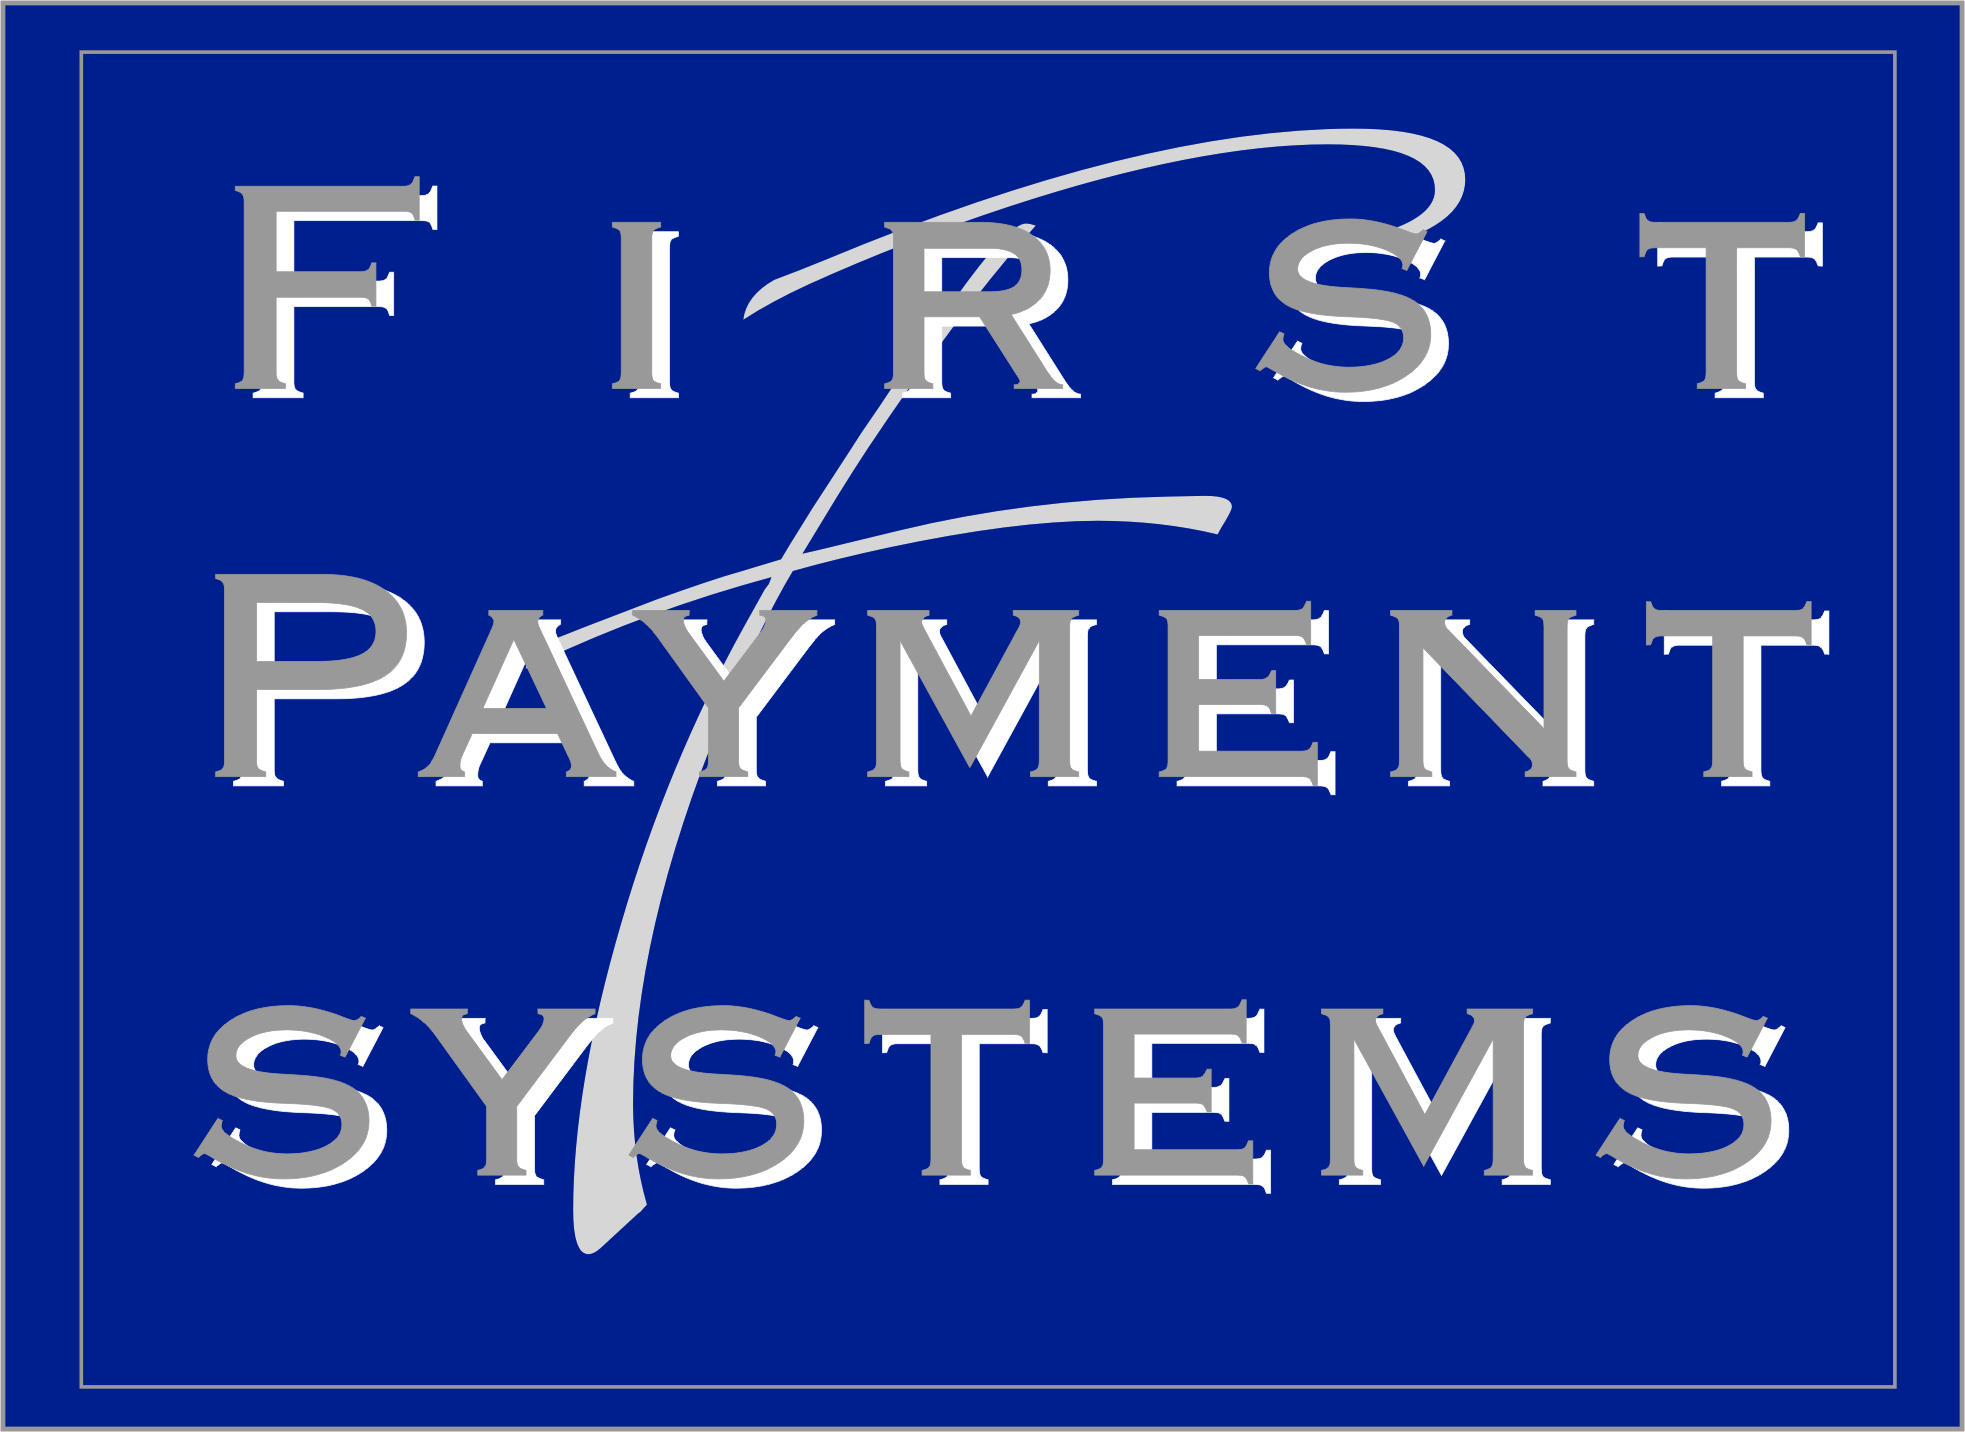 First Payment Systems